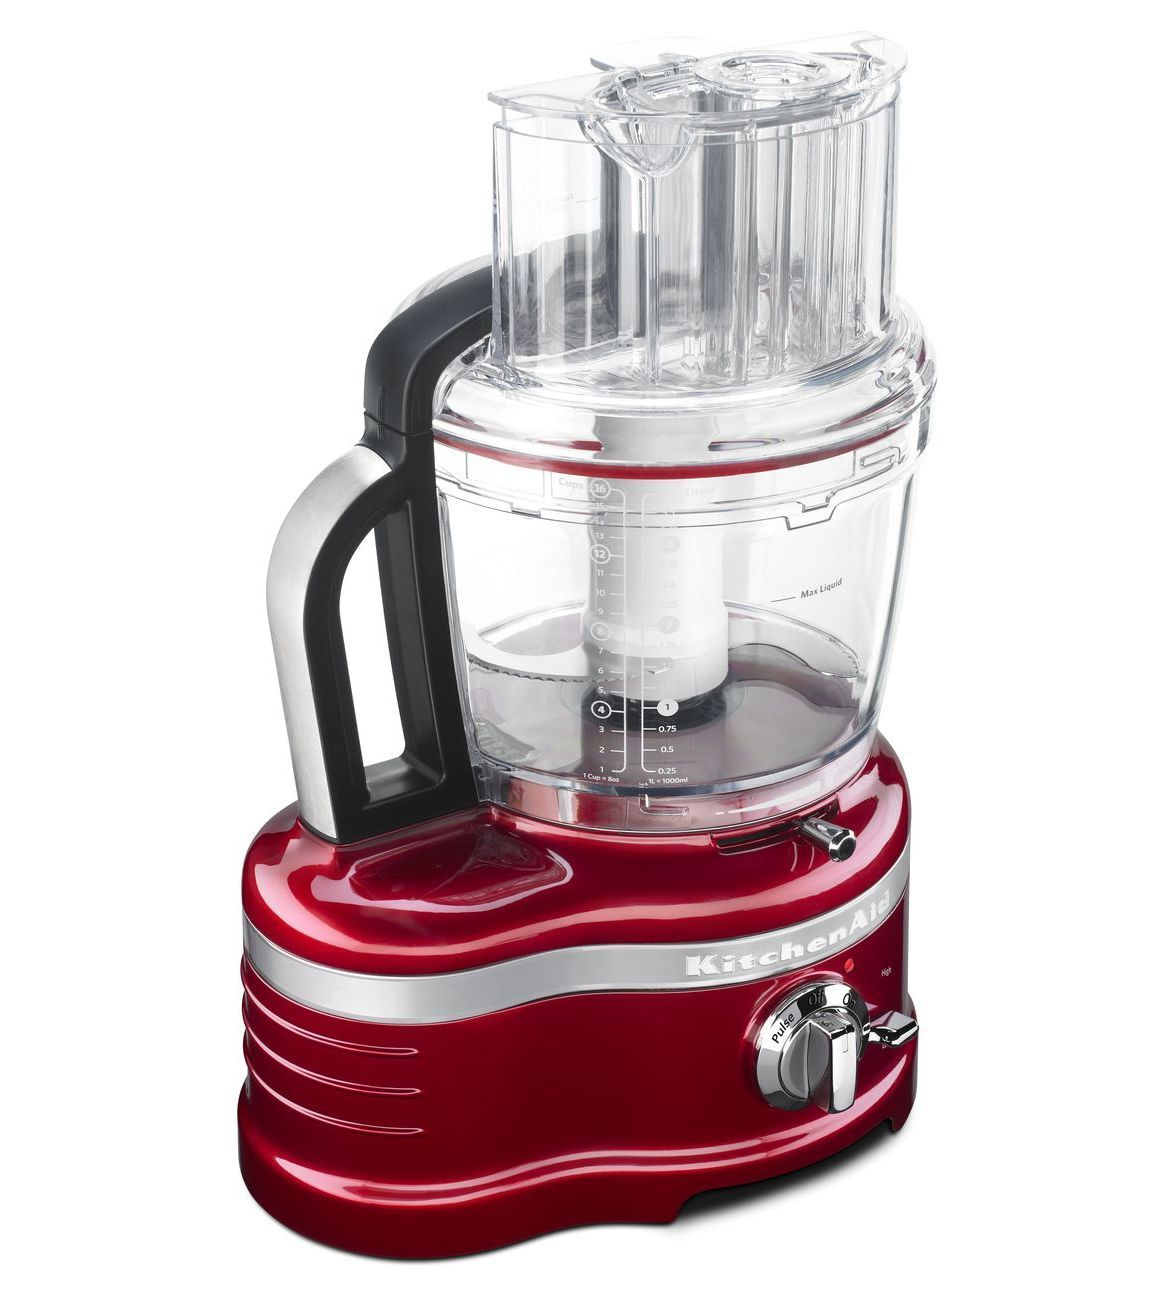 love the 7 cup food processor i have a larger one would really come